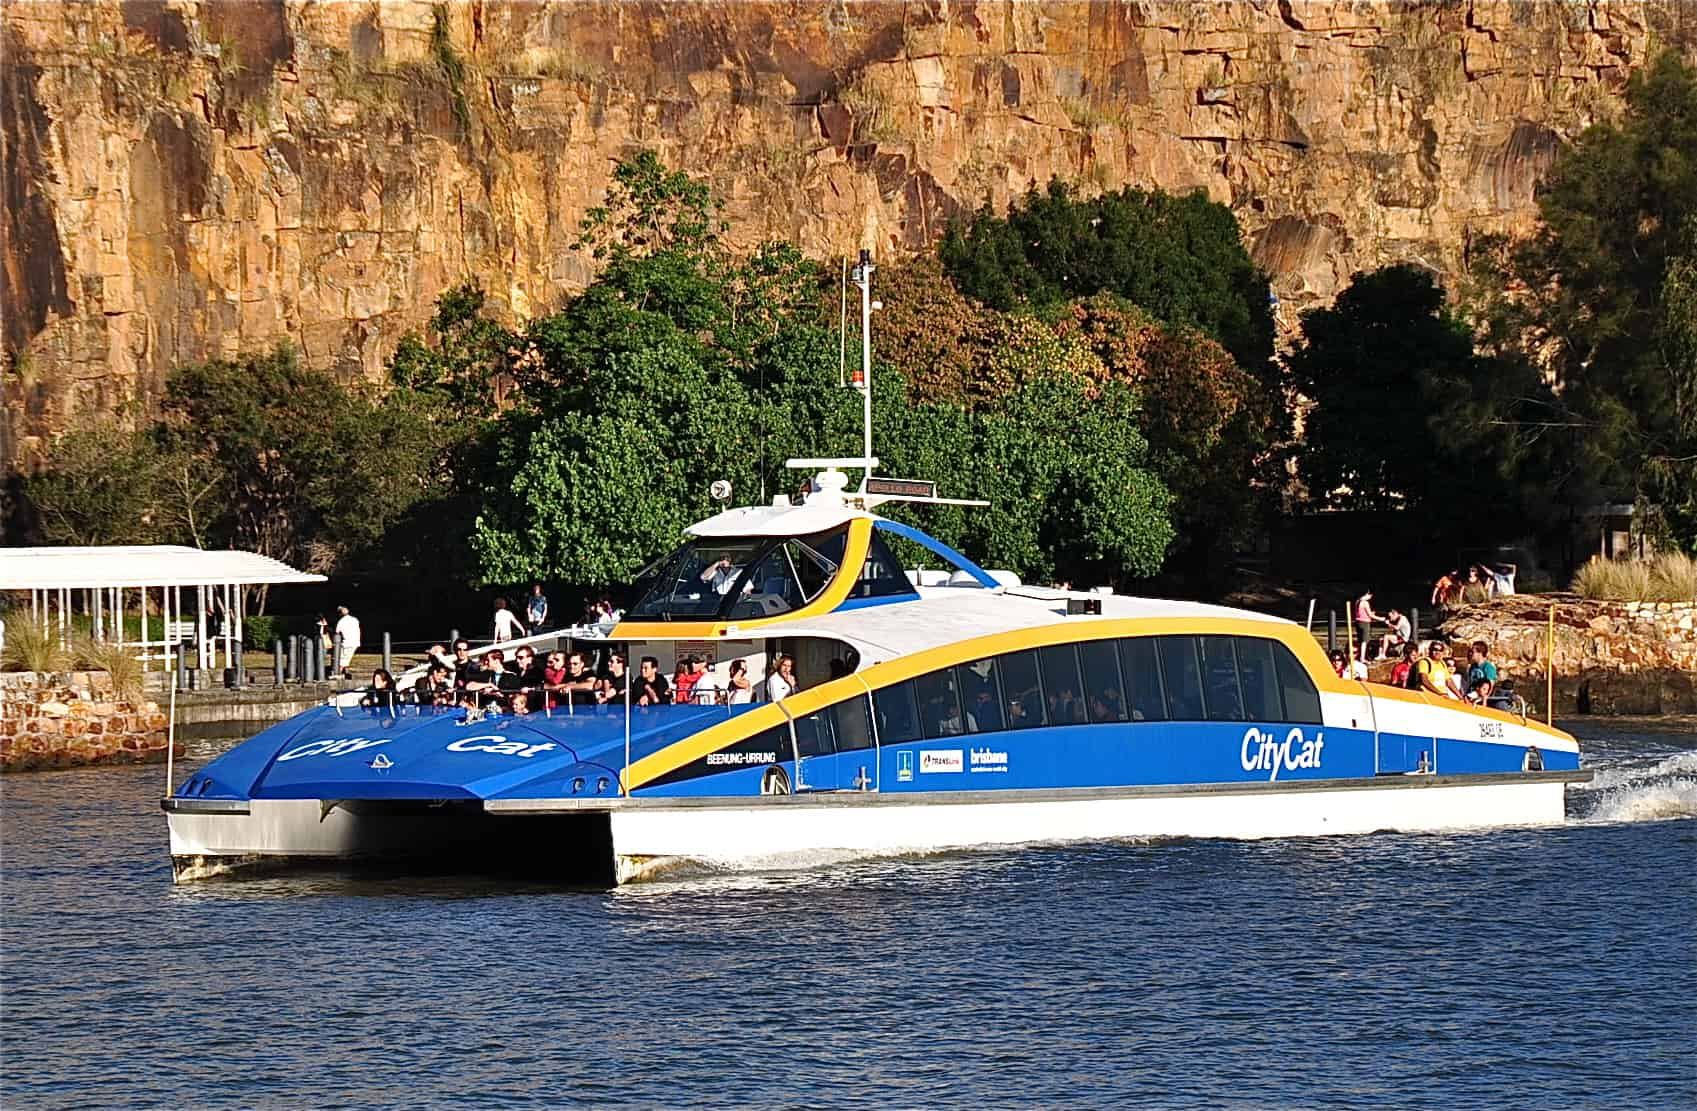 Ferries built by Norman Wrights are the City Cat fleets you see on the Brisbane river everyday.